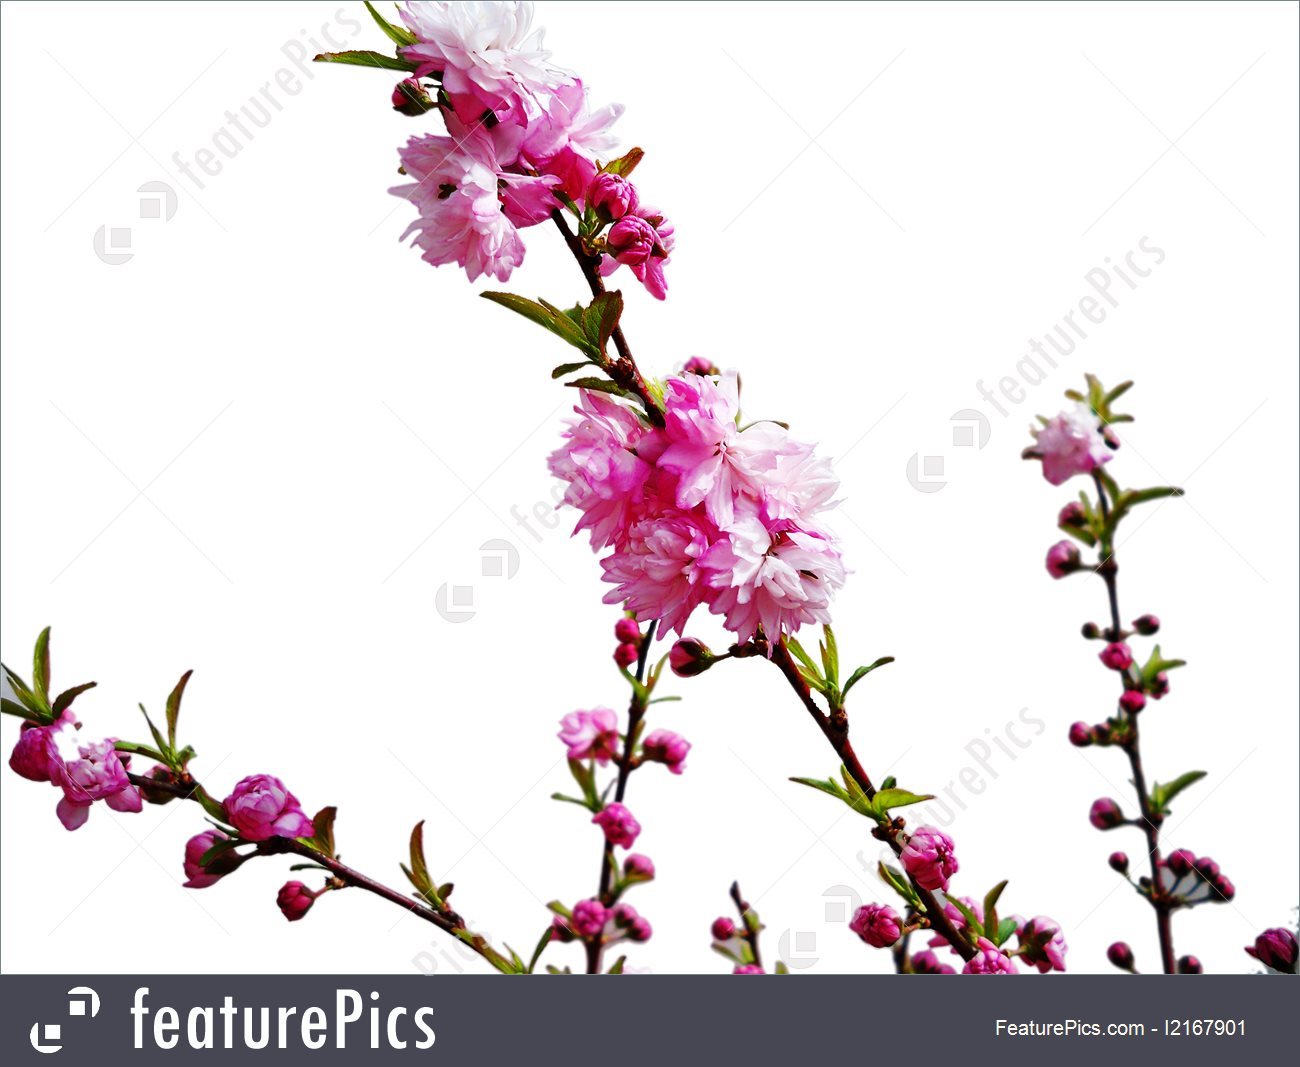 Flowers: Pink Bridal Wreath.